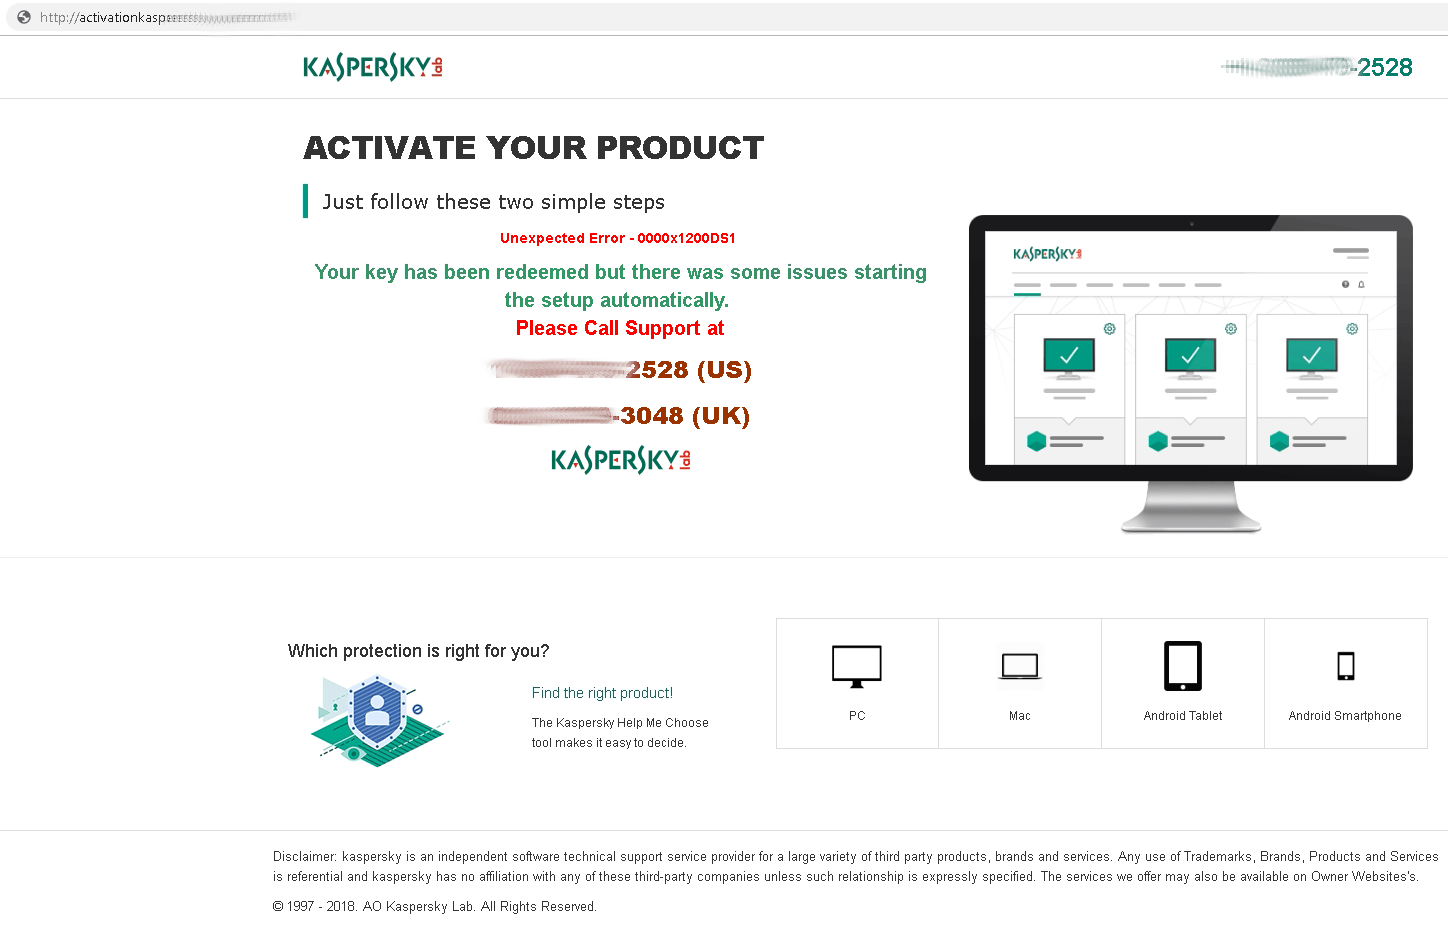 This fake Kaspersky Lab technical support website offers to resolve